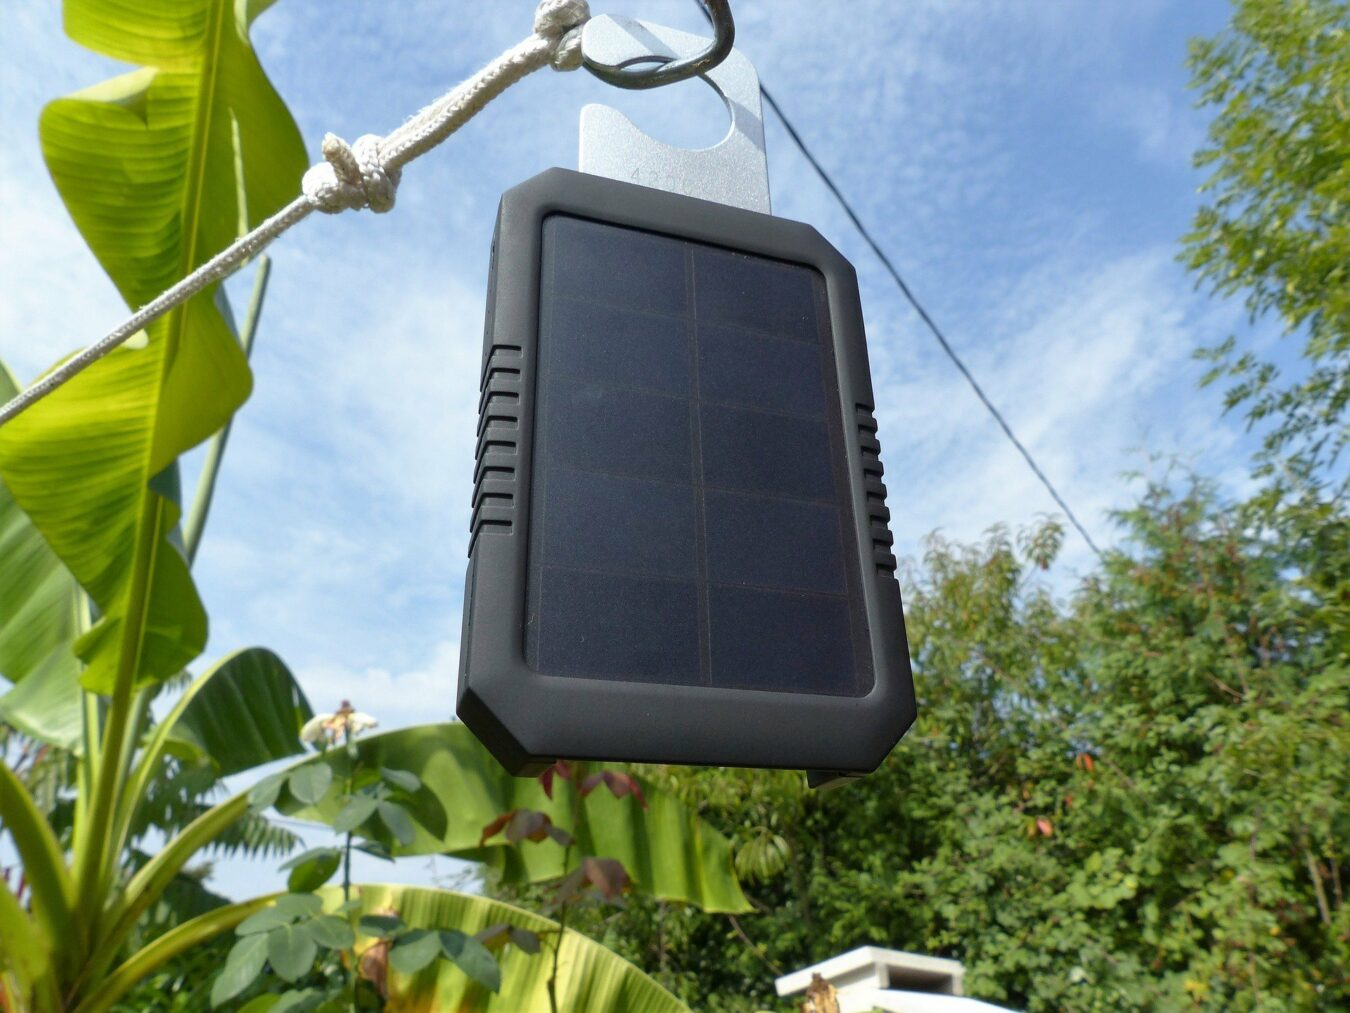 eclate chargeur solaire lumineux